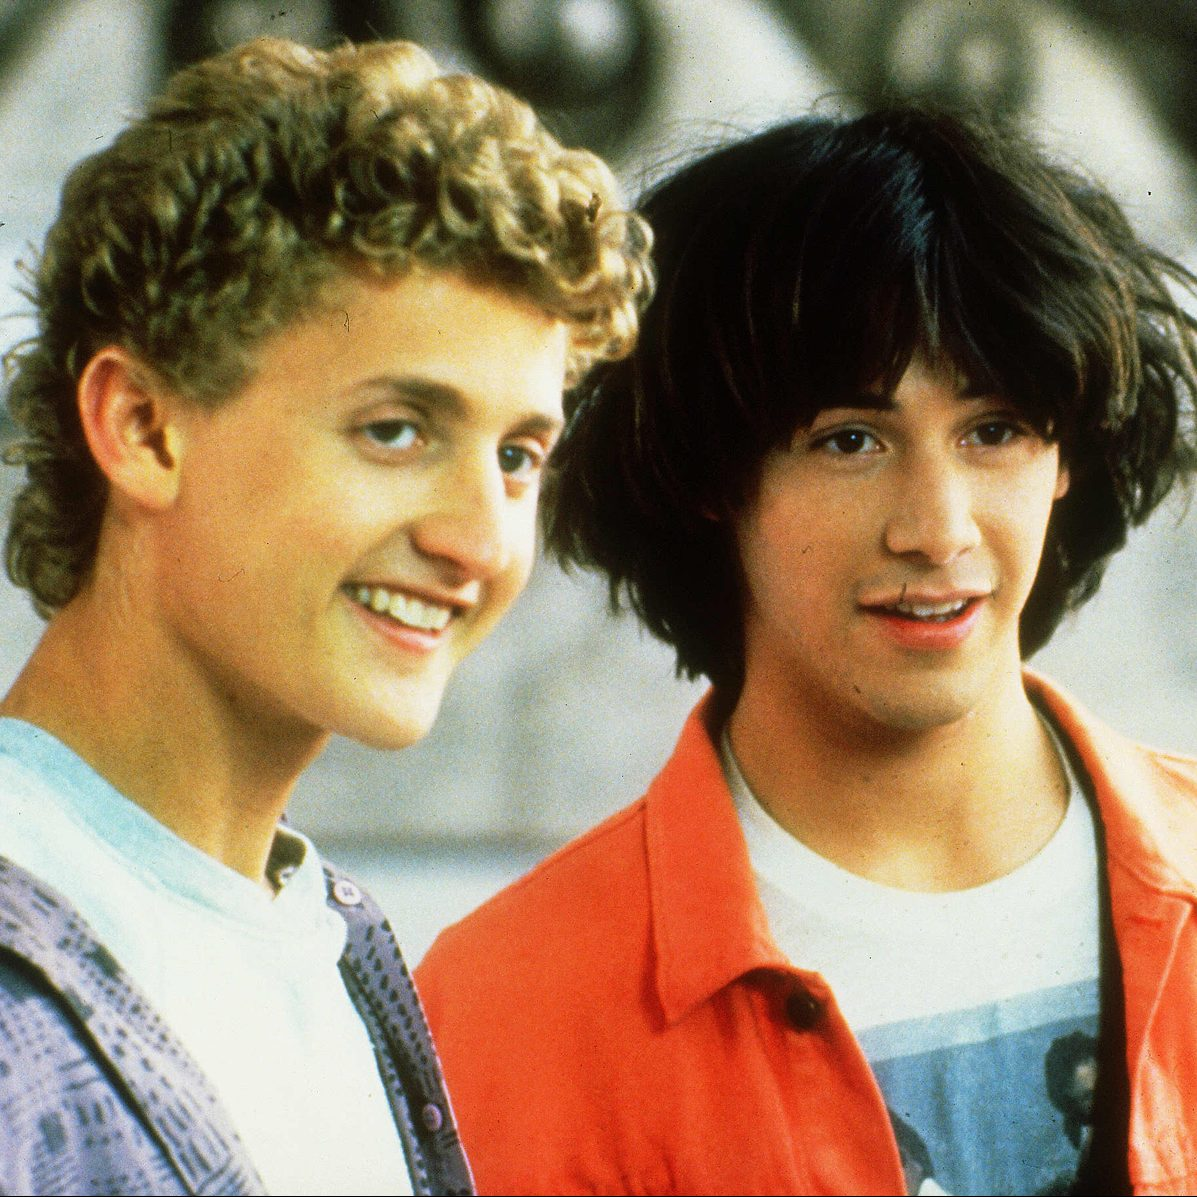 5882114aW e1599572473218 25 Totally Non-Heinous Facts About Bill & Ted's Excellent Adventure!